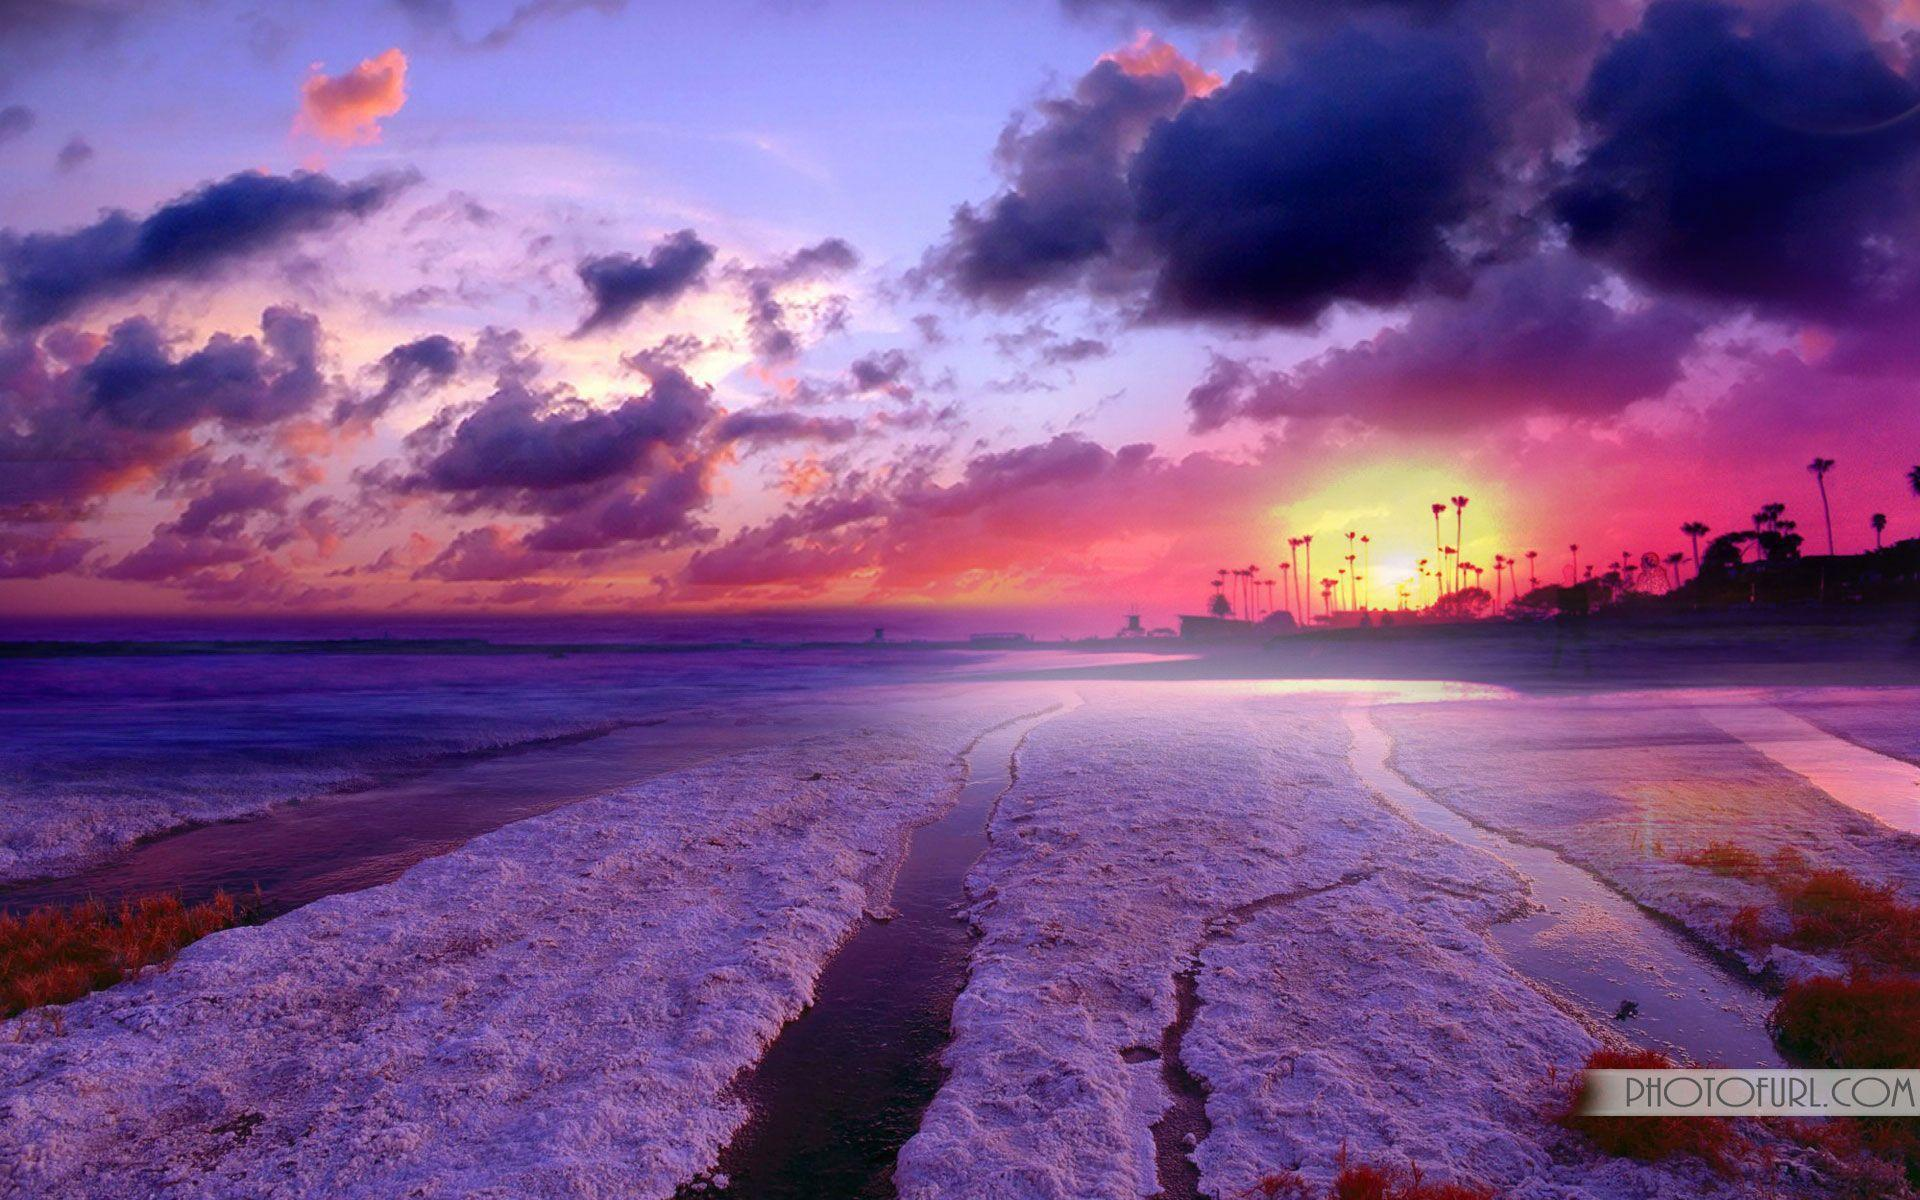 sunset wallpapers wallpapers13com - photo #46